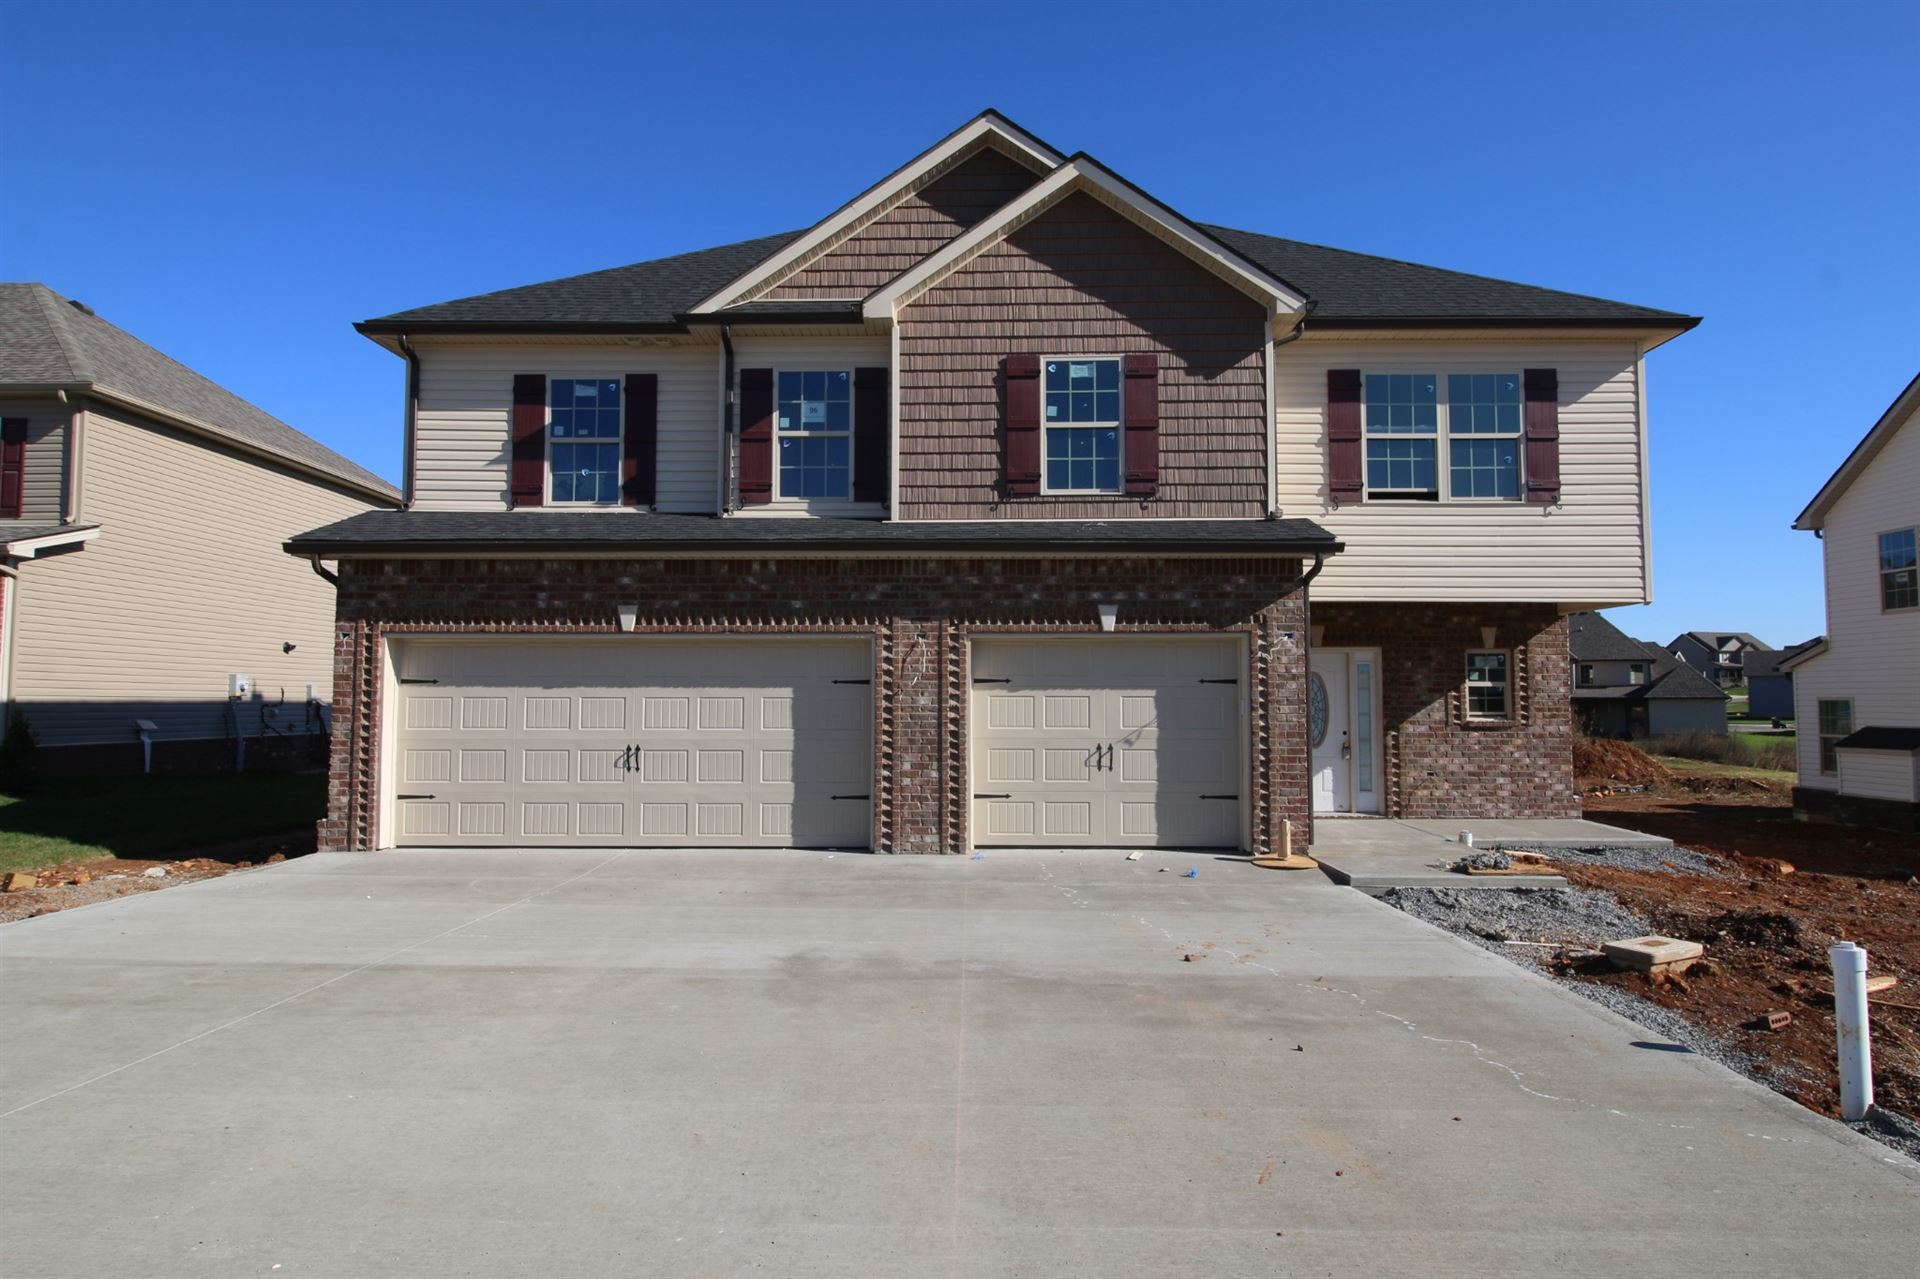 96 Reserve at Hickory Wild, Clarksville, TN 37043 - MLS#: 2181517